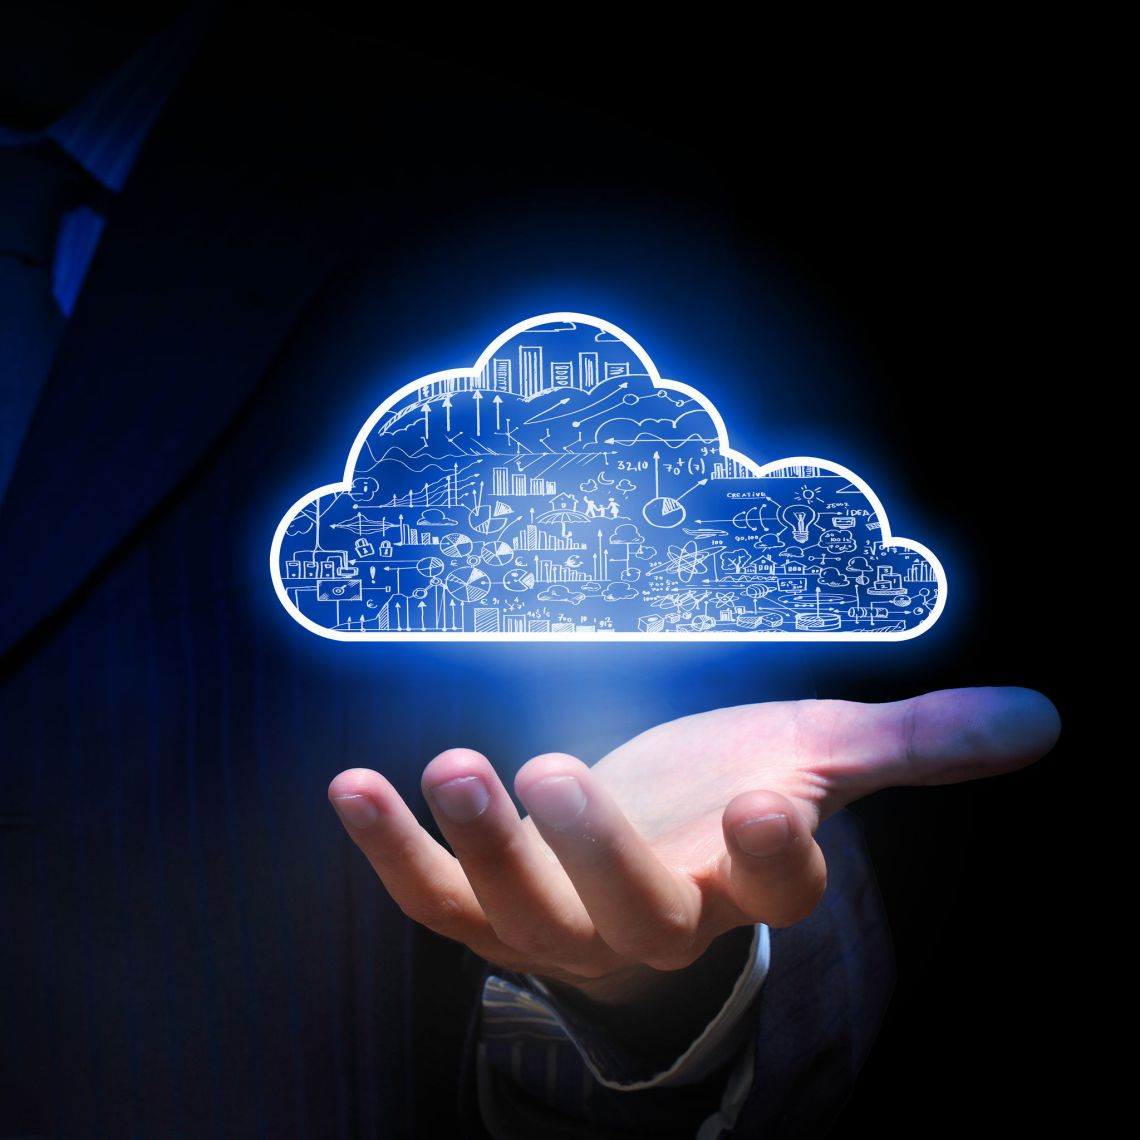 44868378 - businessman hand holding cloud computing concept in palm - Microsoft Cloud IT Pro Podcast Episode 136